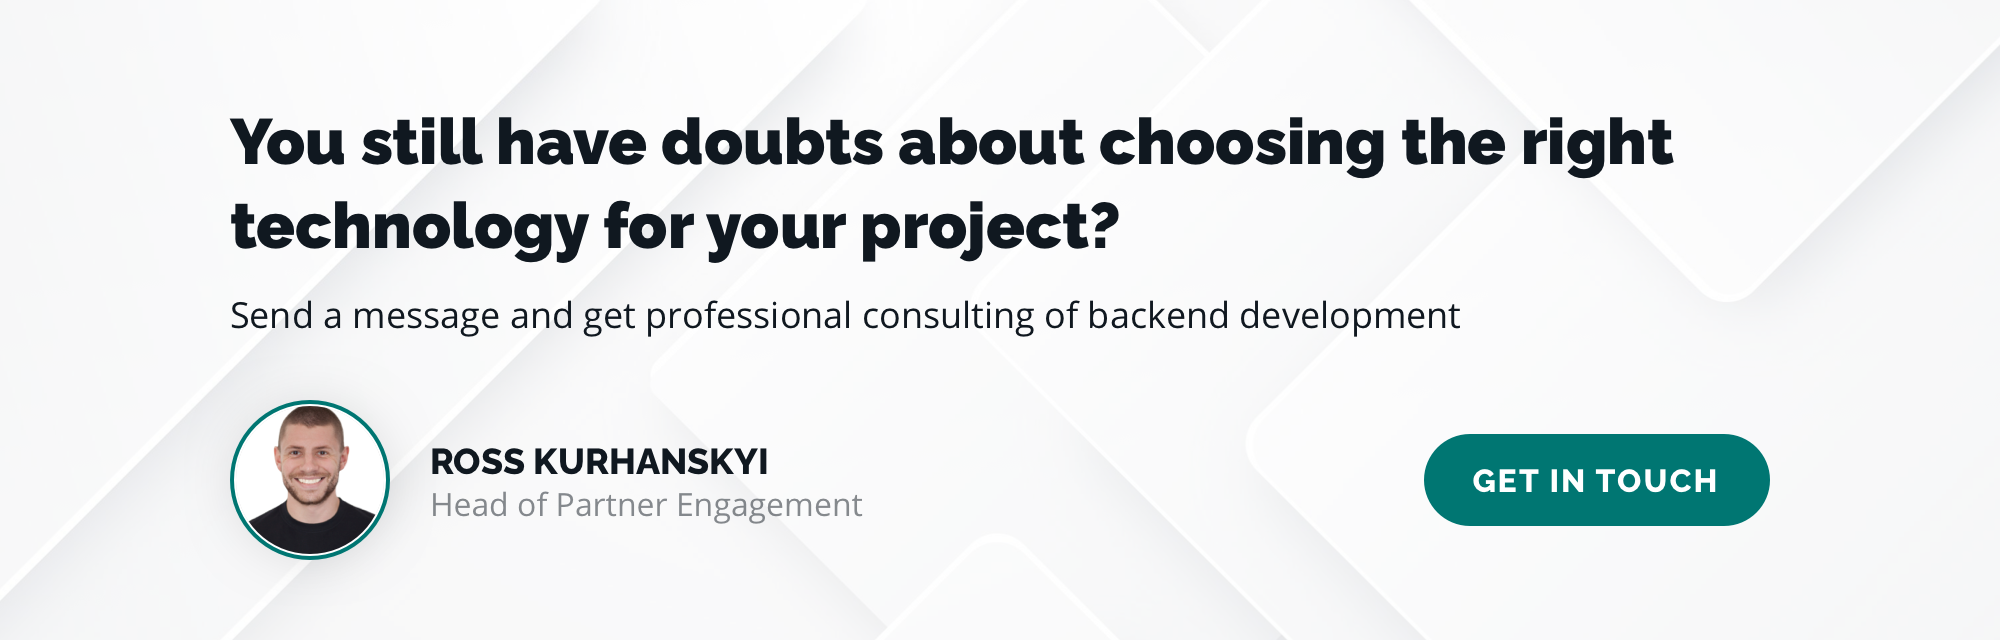 You still have doubts about choosing the right technology for your project?